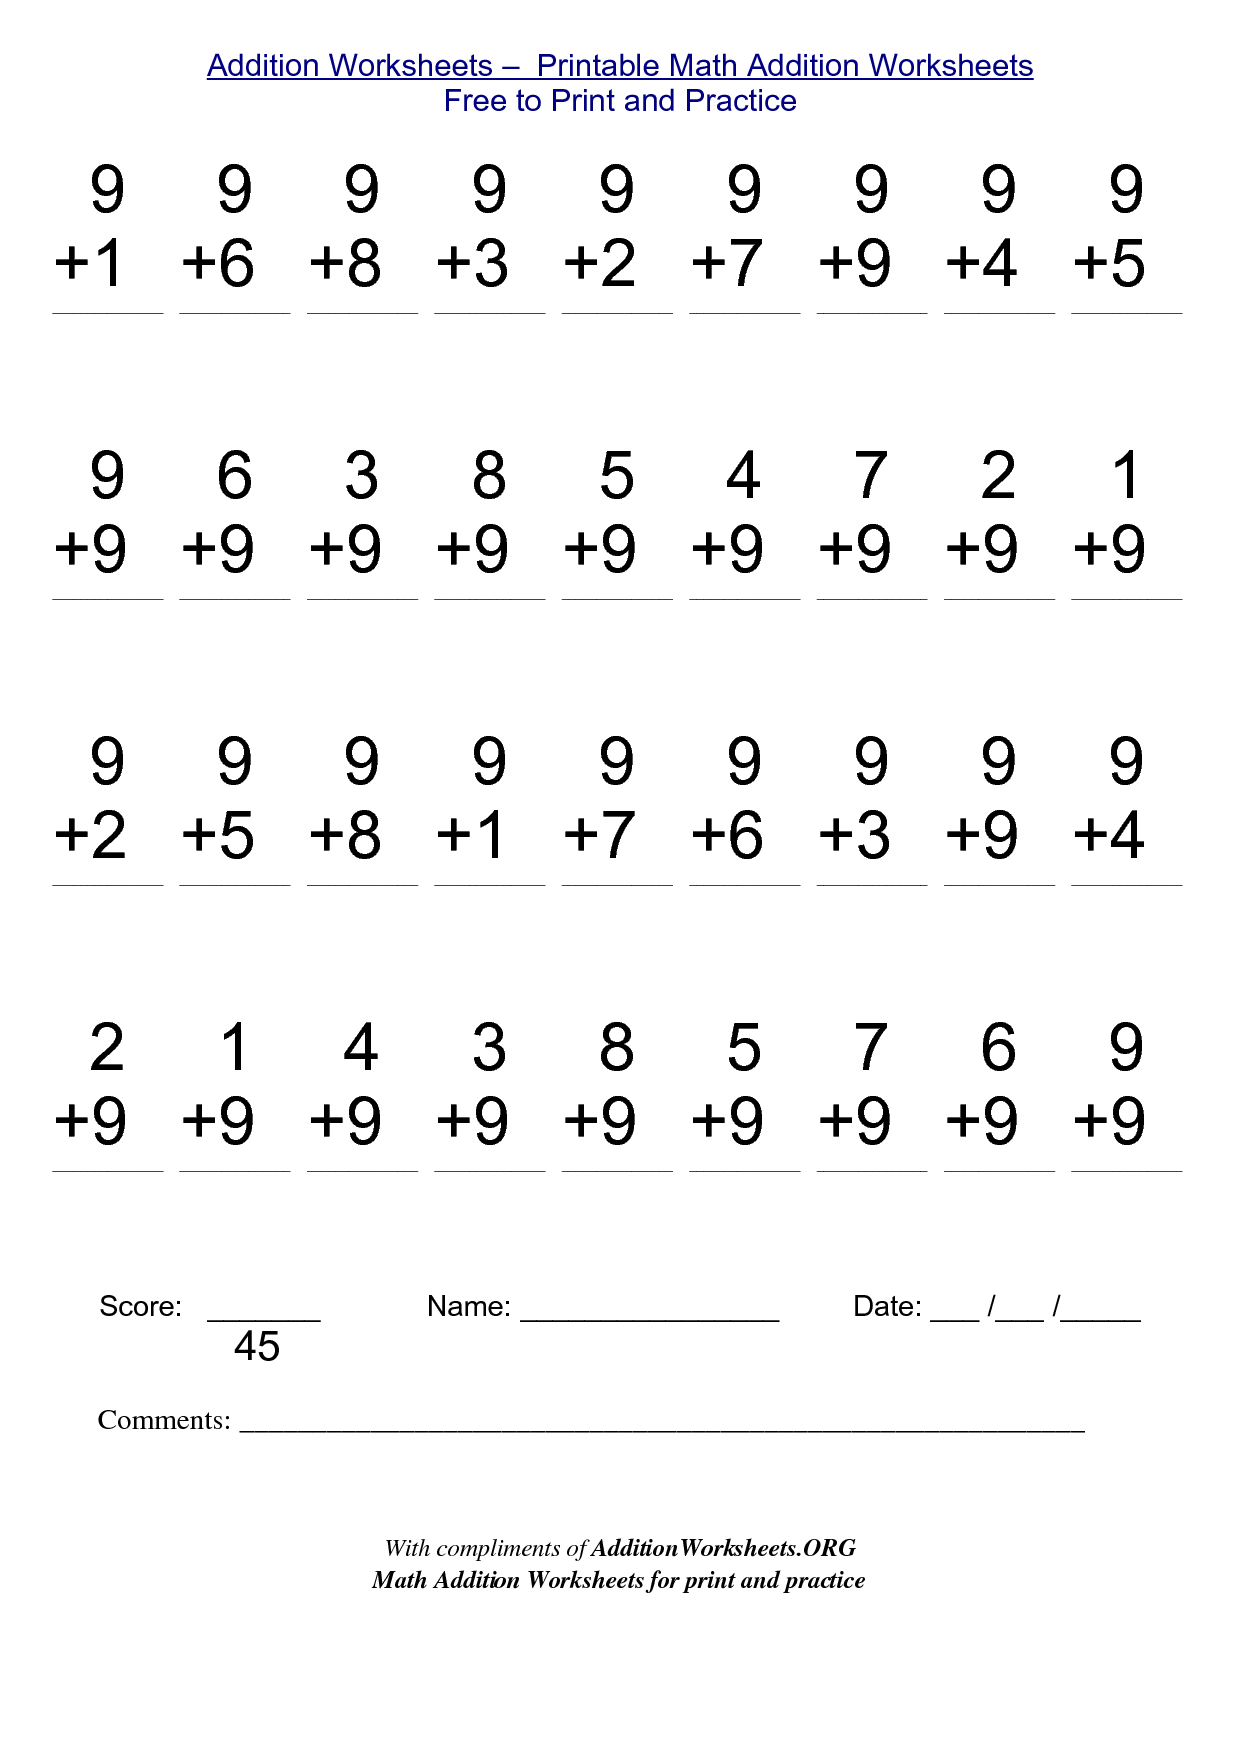 Math Worksheets for Free to Print Alot ME – Math Worksheets Elementary